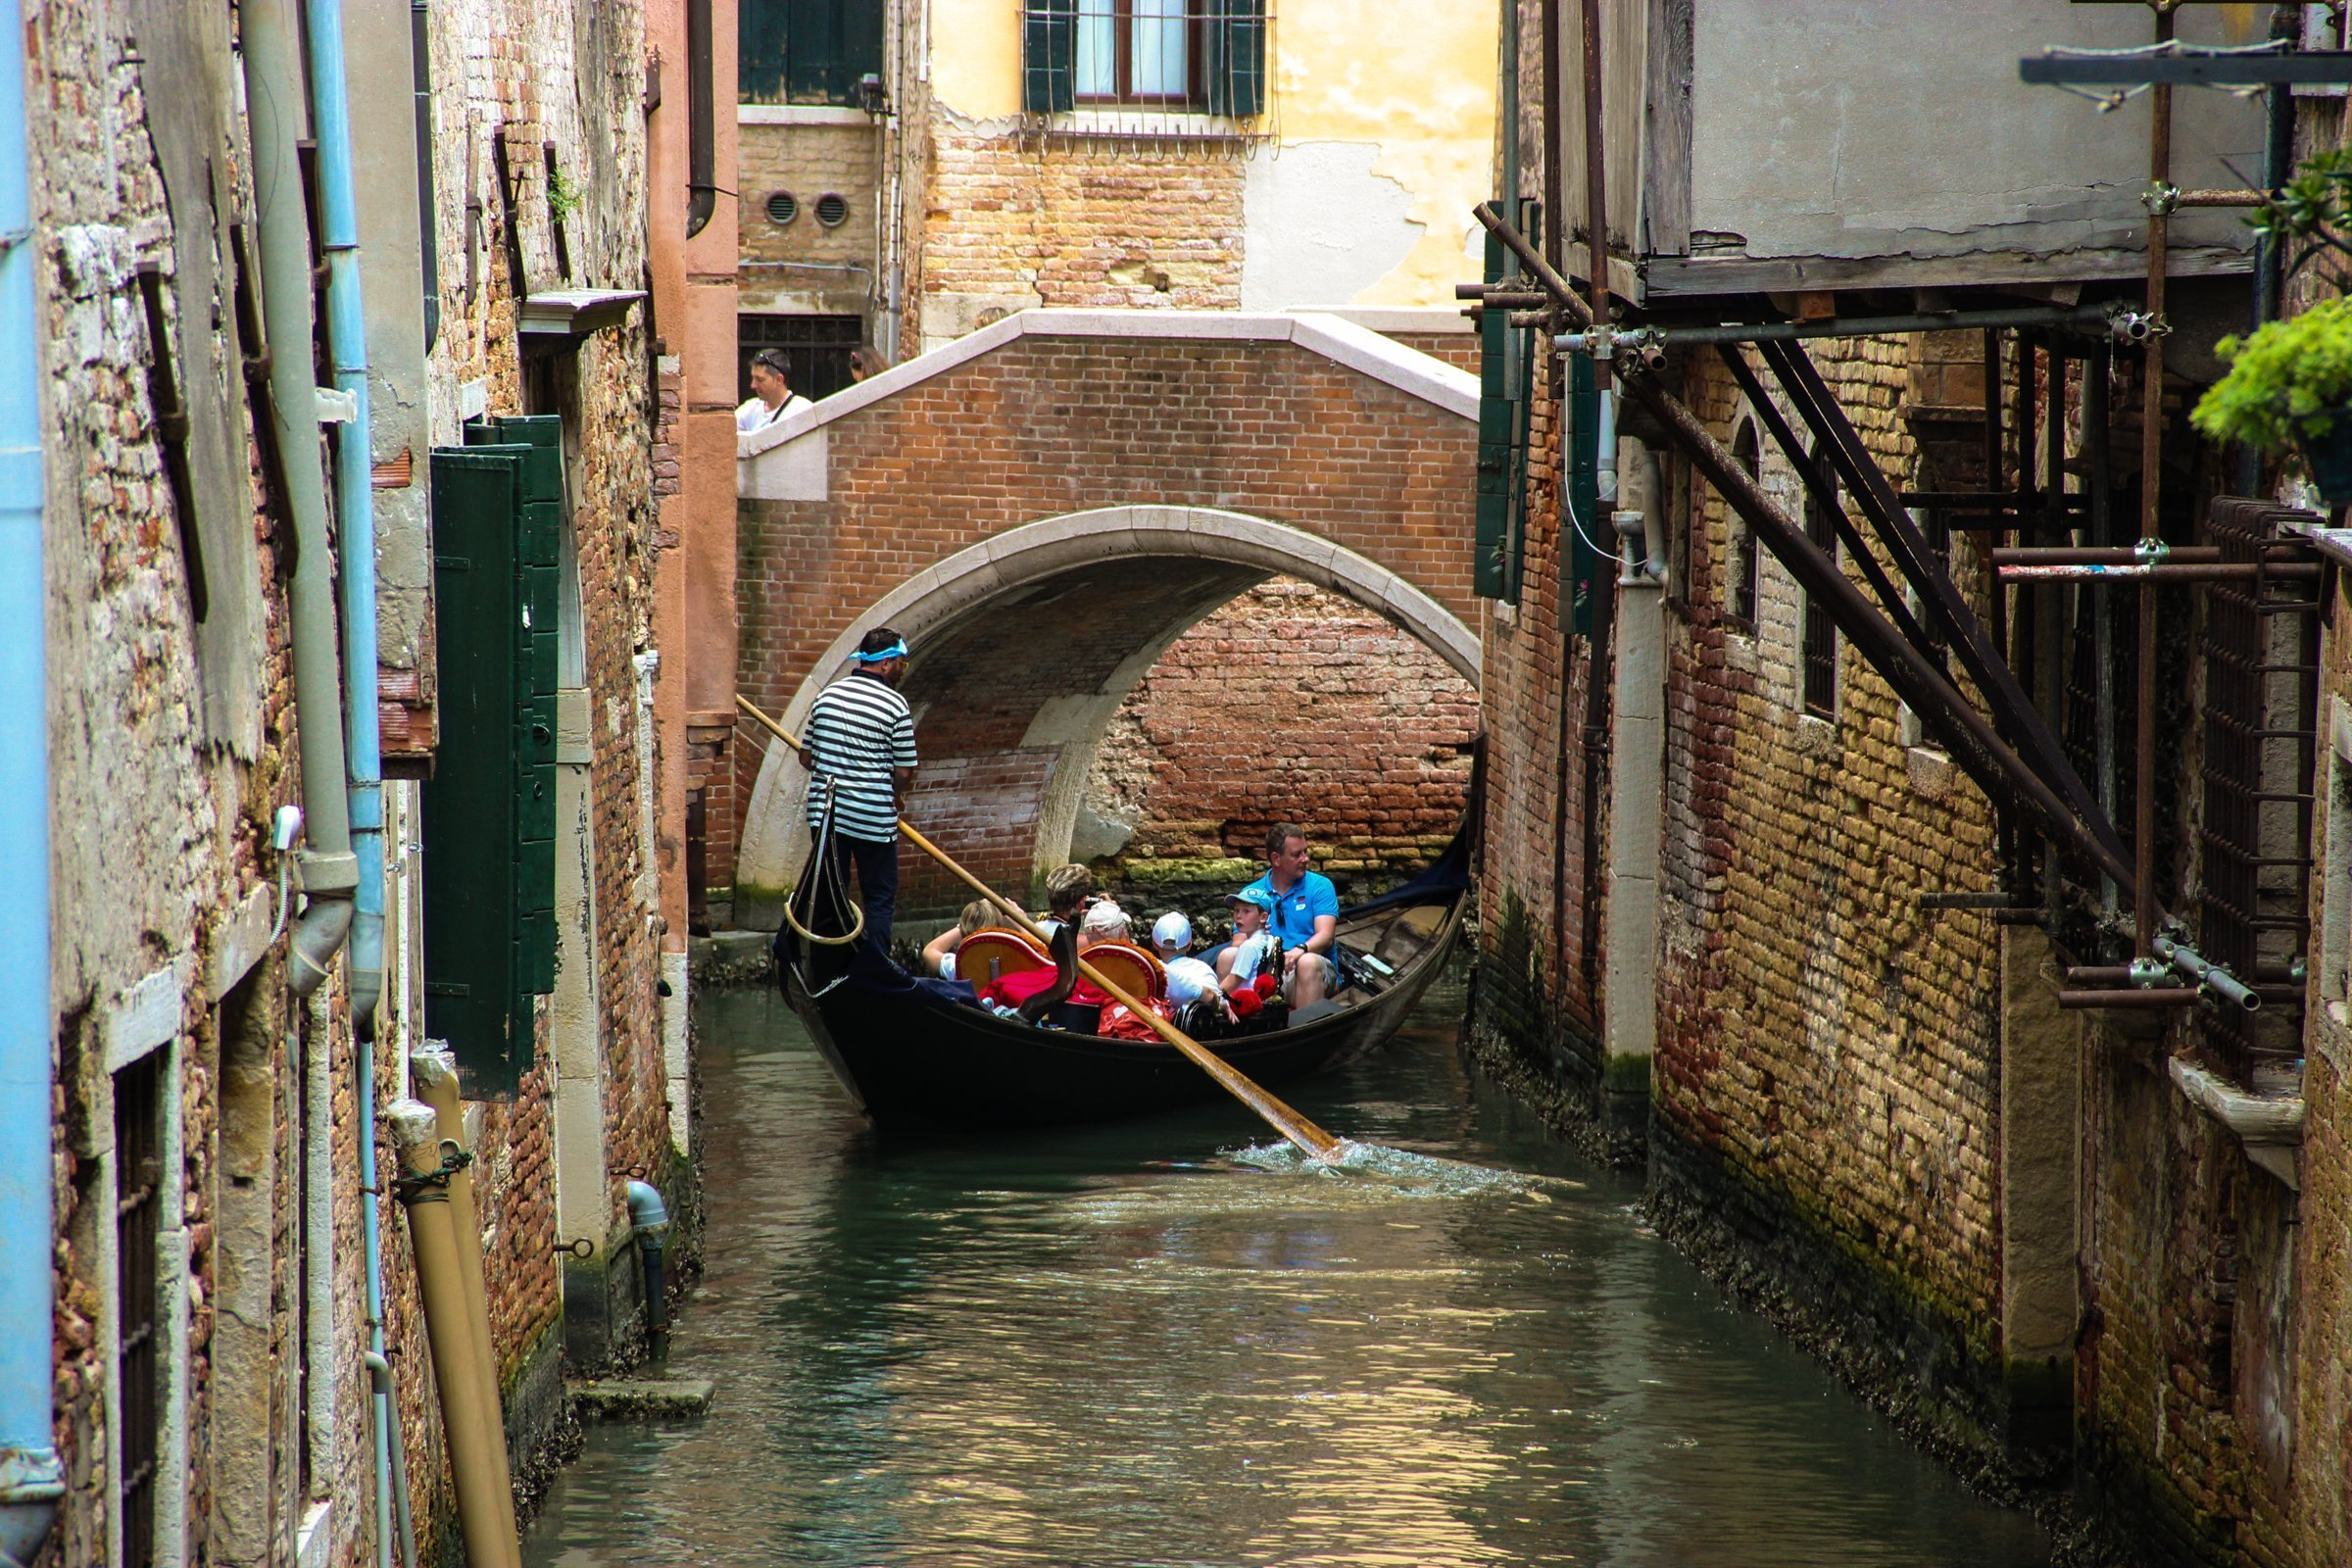 Tourists On Gondola In Canal Near Bridge